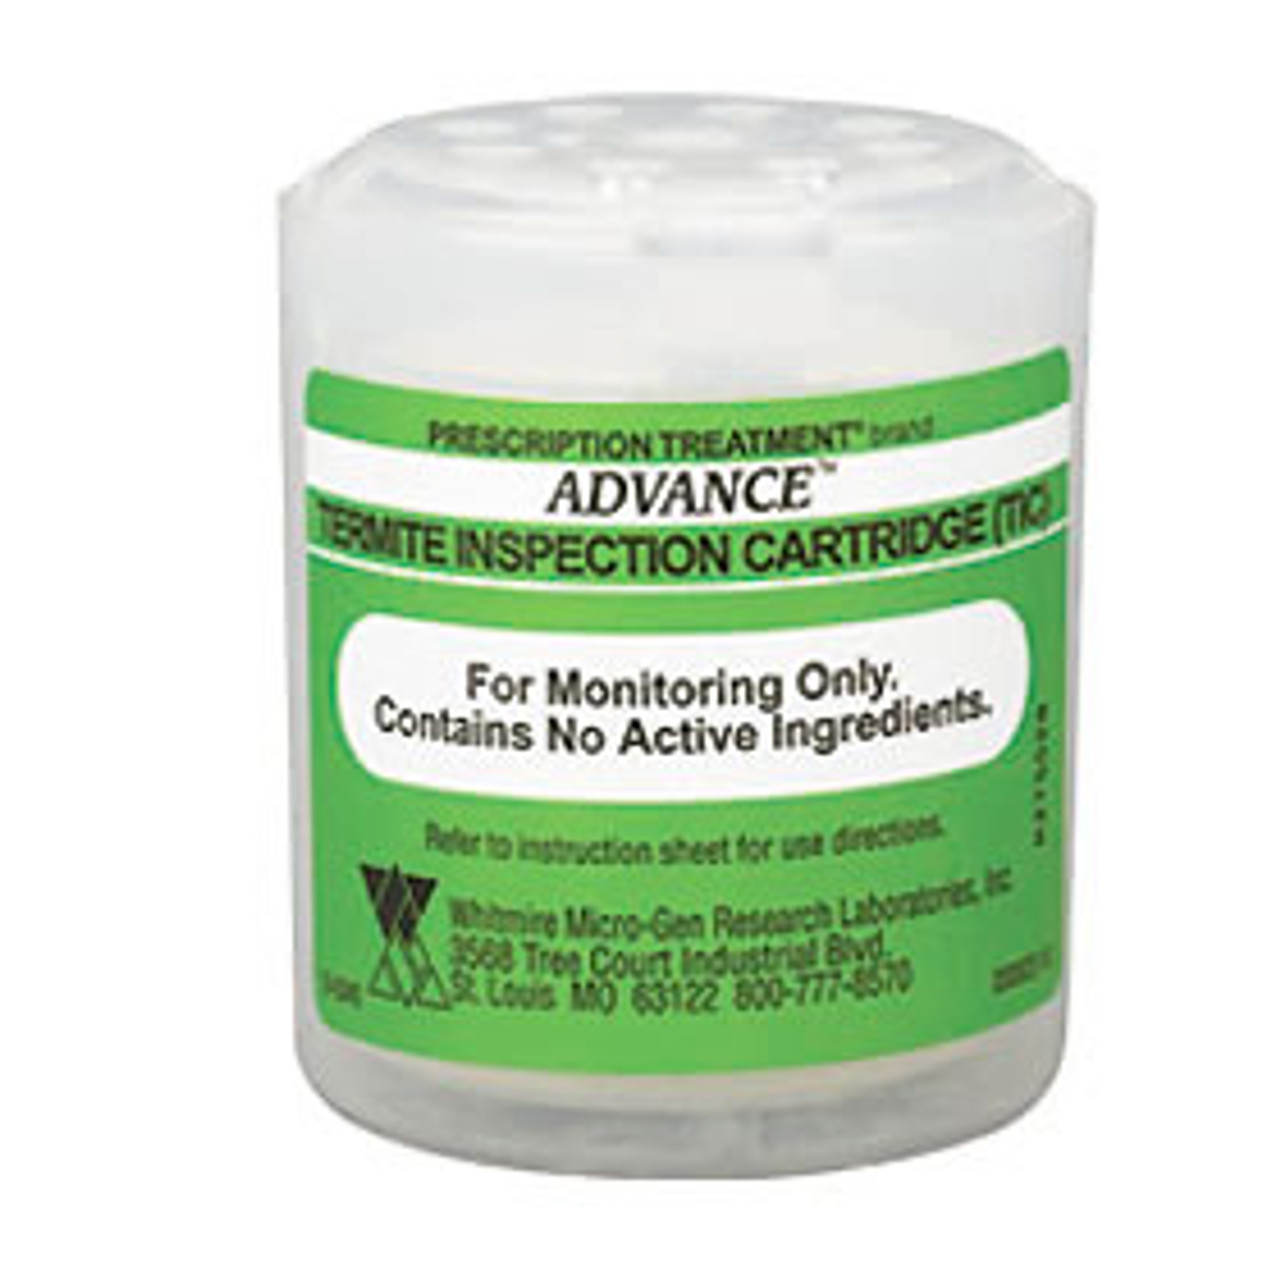 Advance termite inspection cartridge